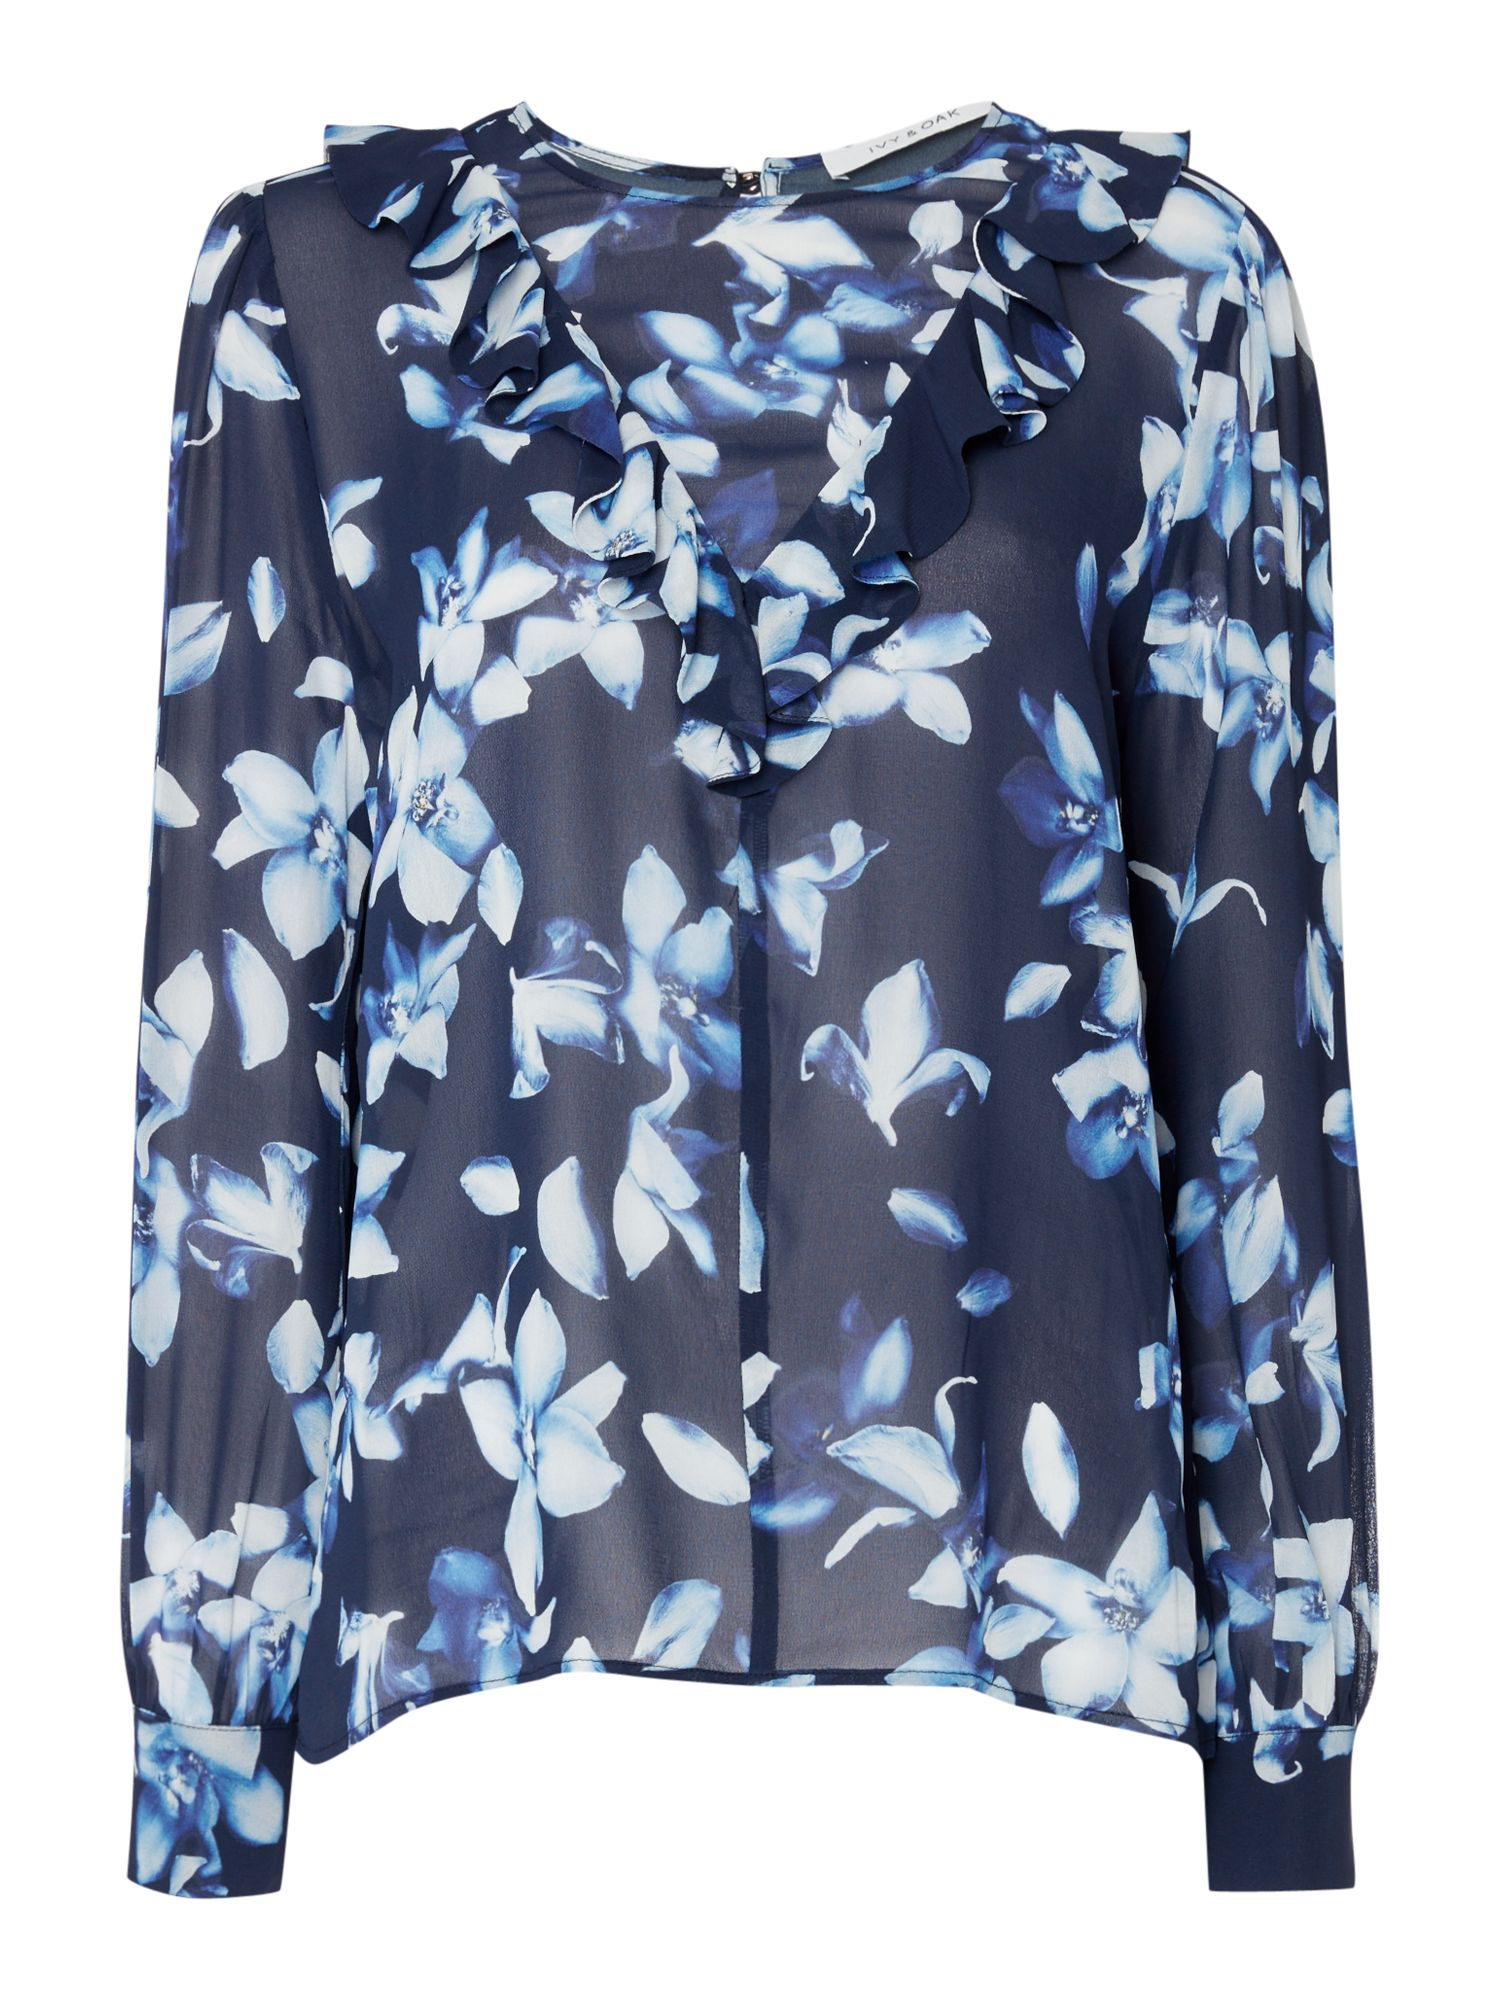 IVY & OAK Ivy & Oak long bell sleeve floral printed chiffon blouse, Midnight Blue